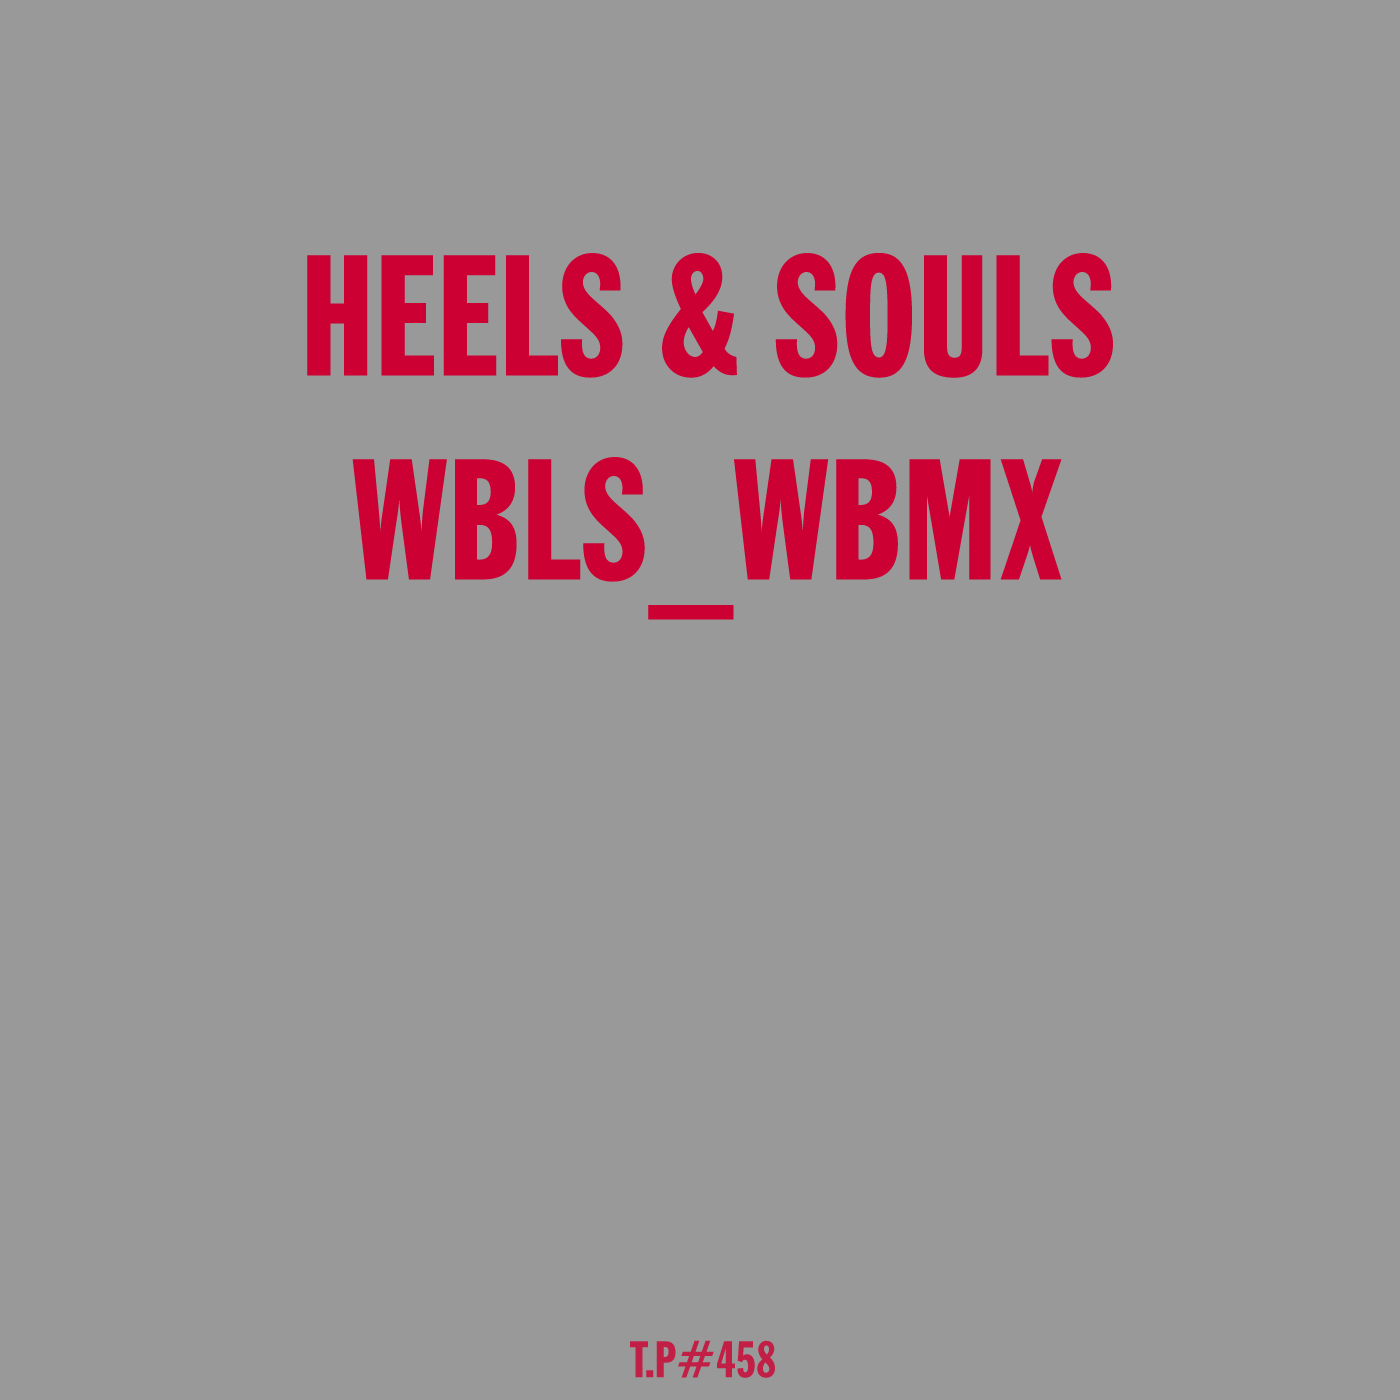 Heels & Souls, WBLS, WBMX, Inspired, Mix, Disco, Boogie, Party